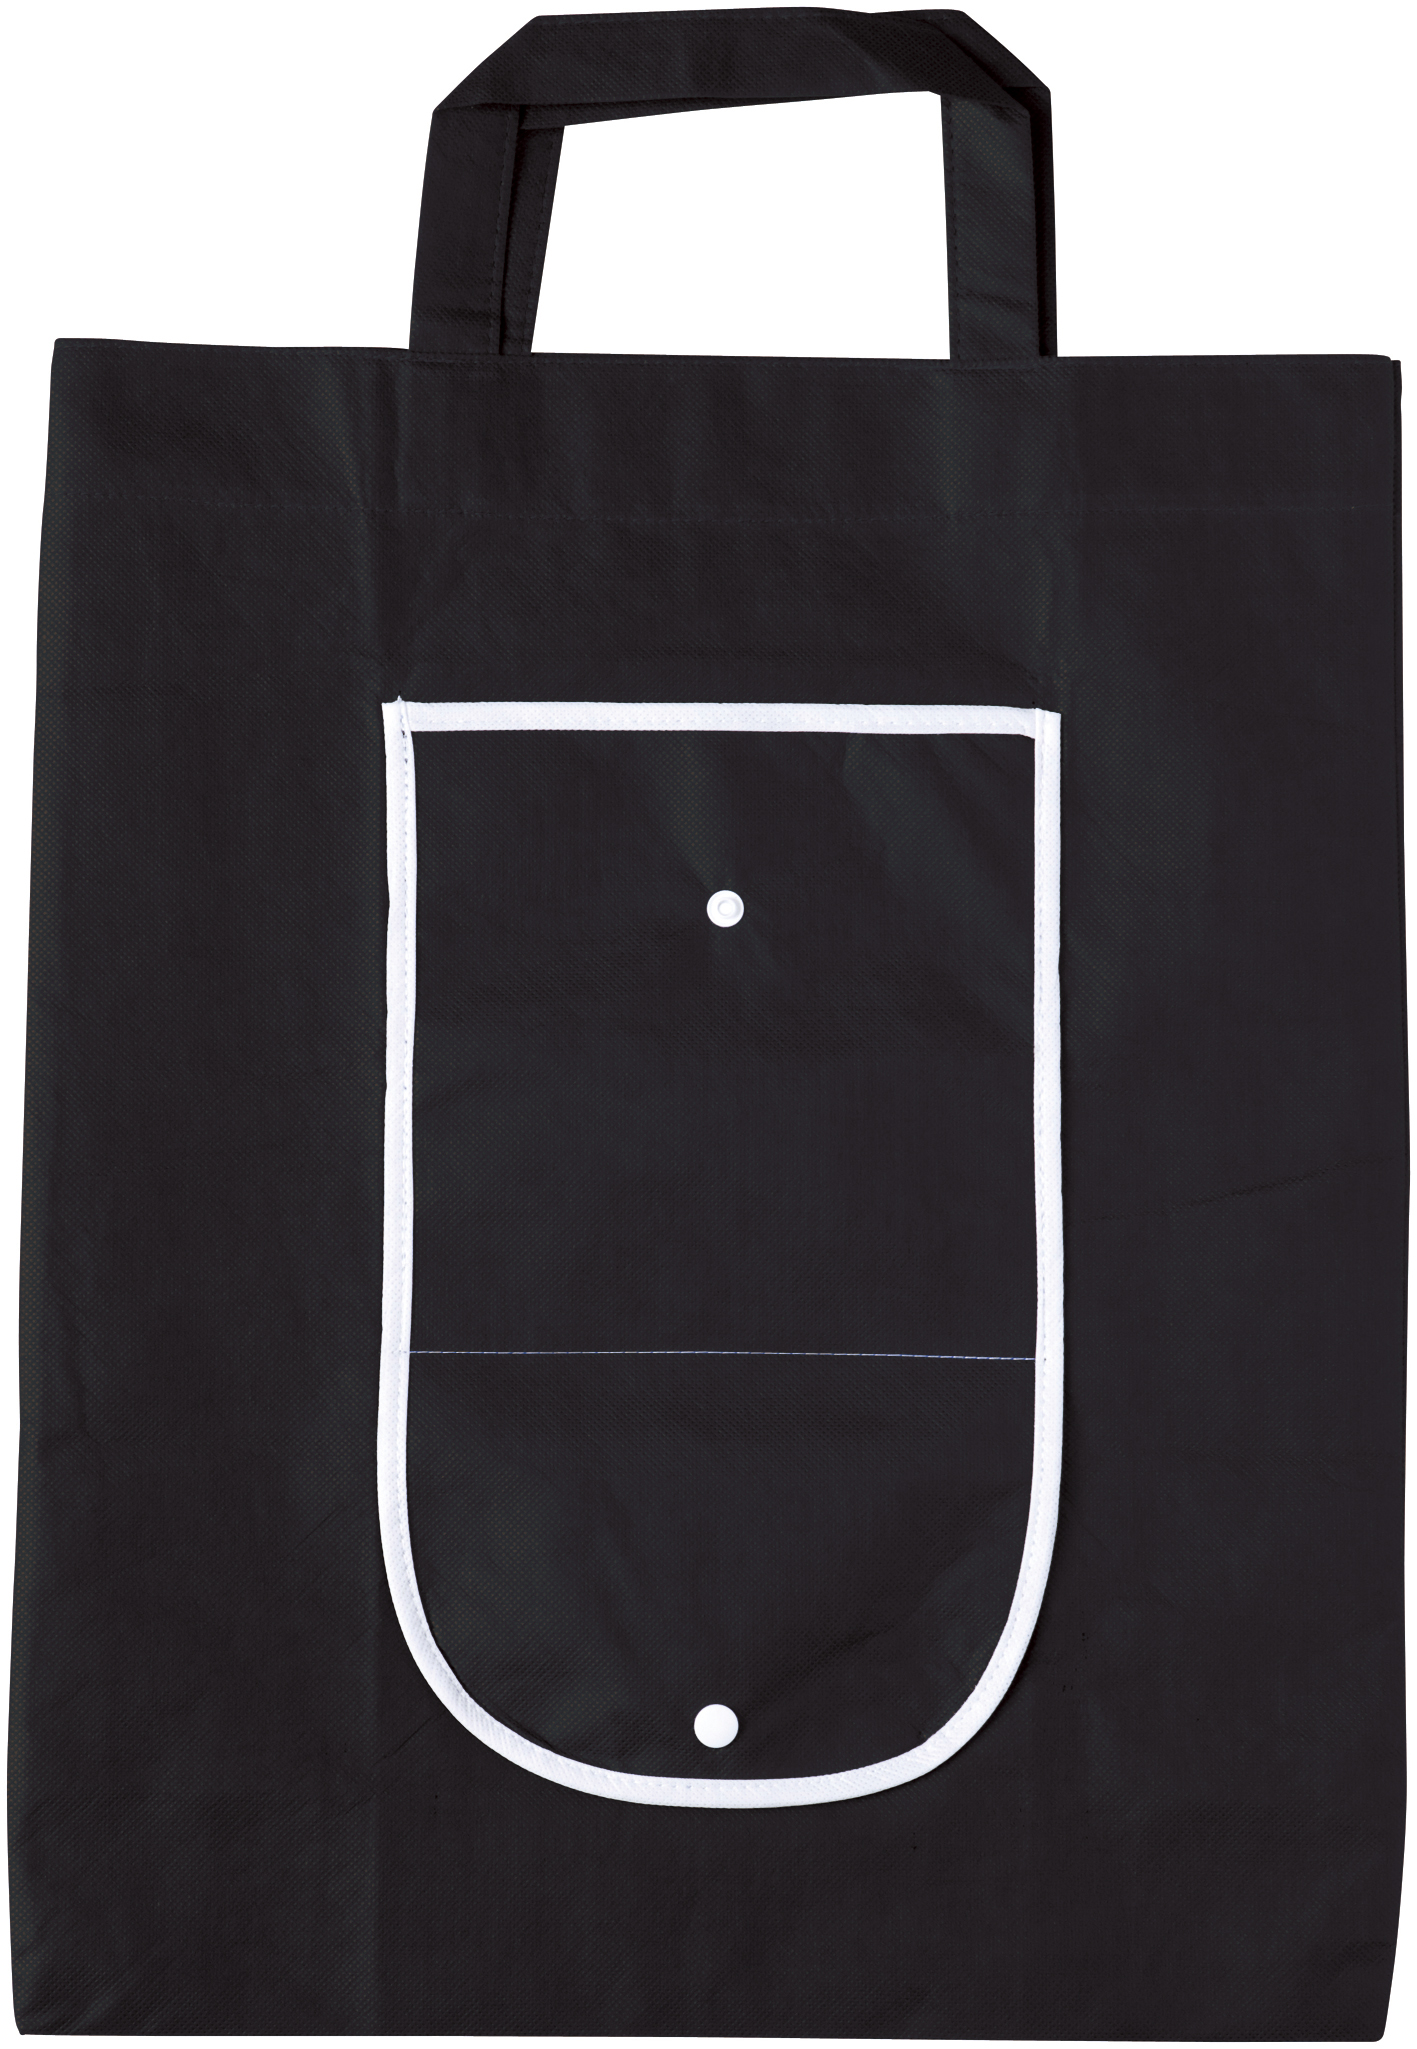 Promotional Rainham Fold Up Bag